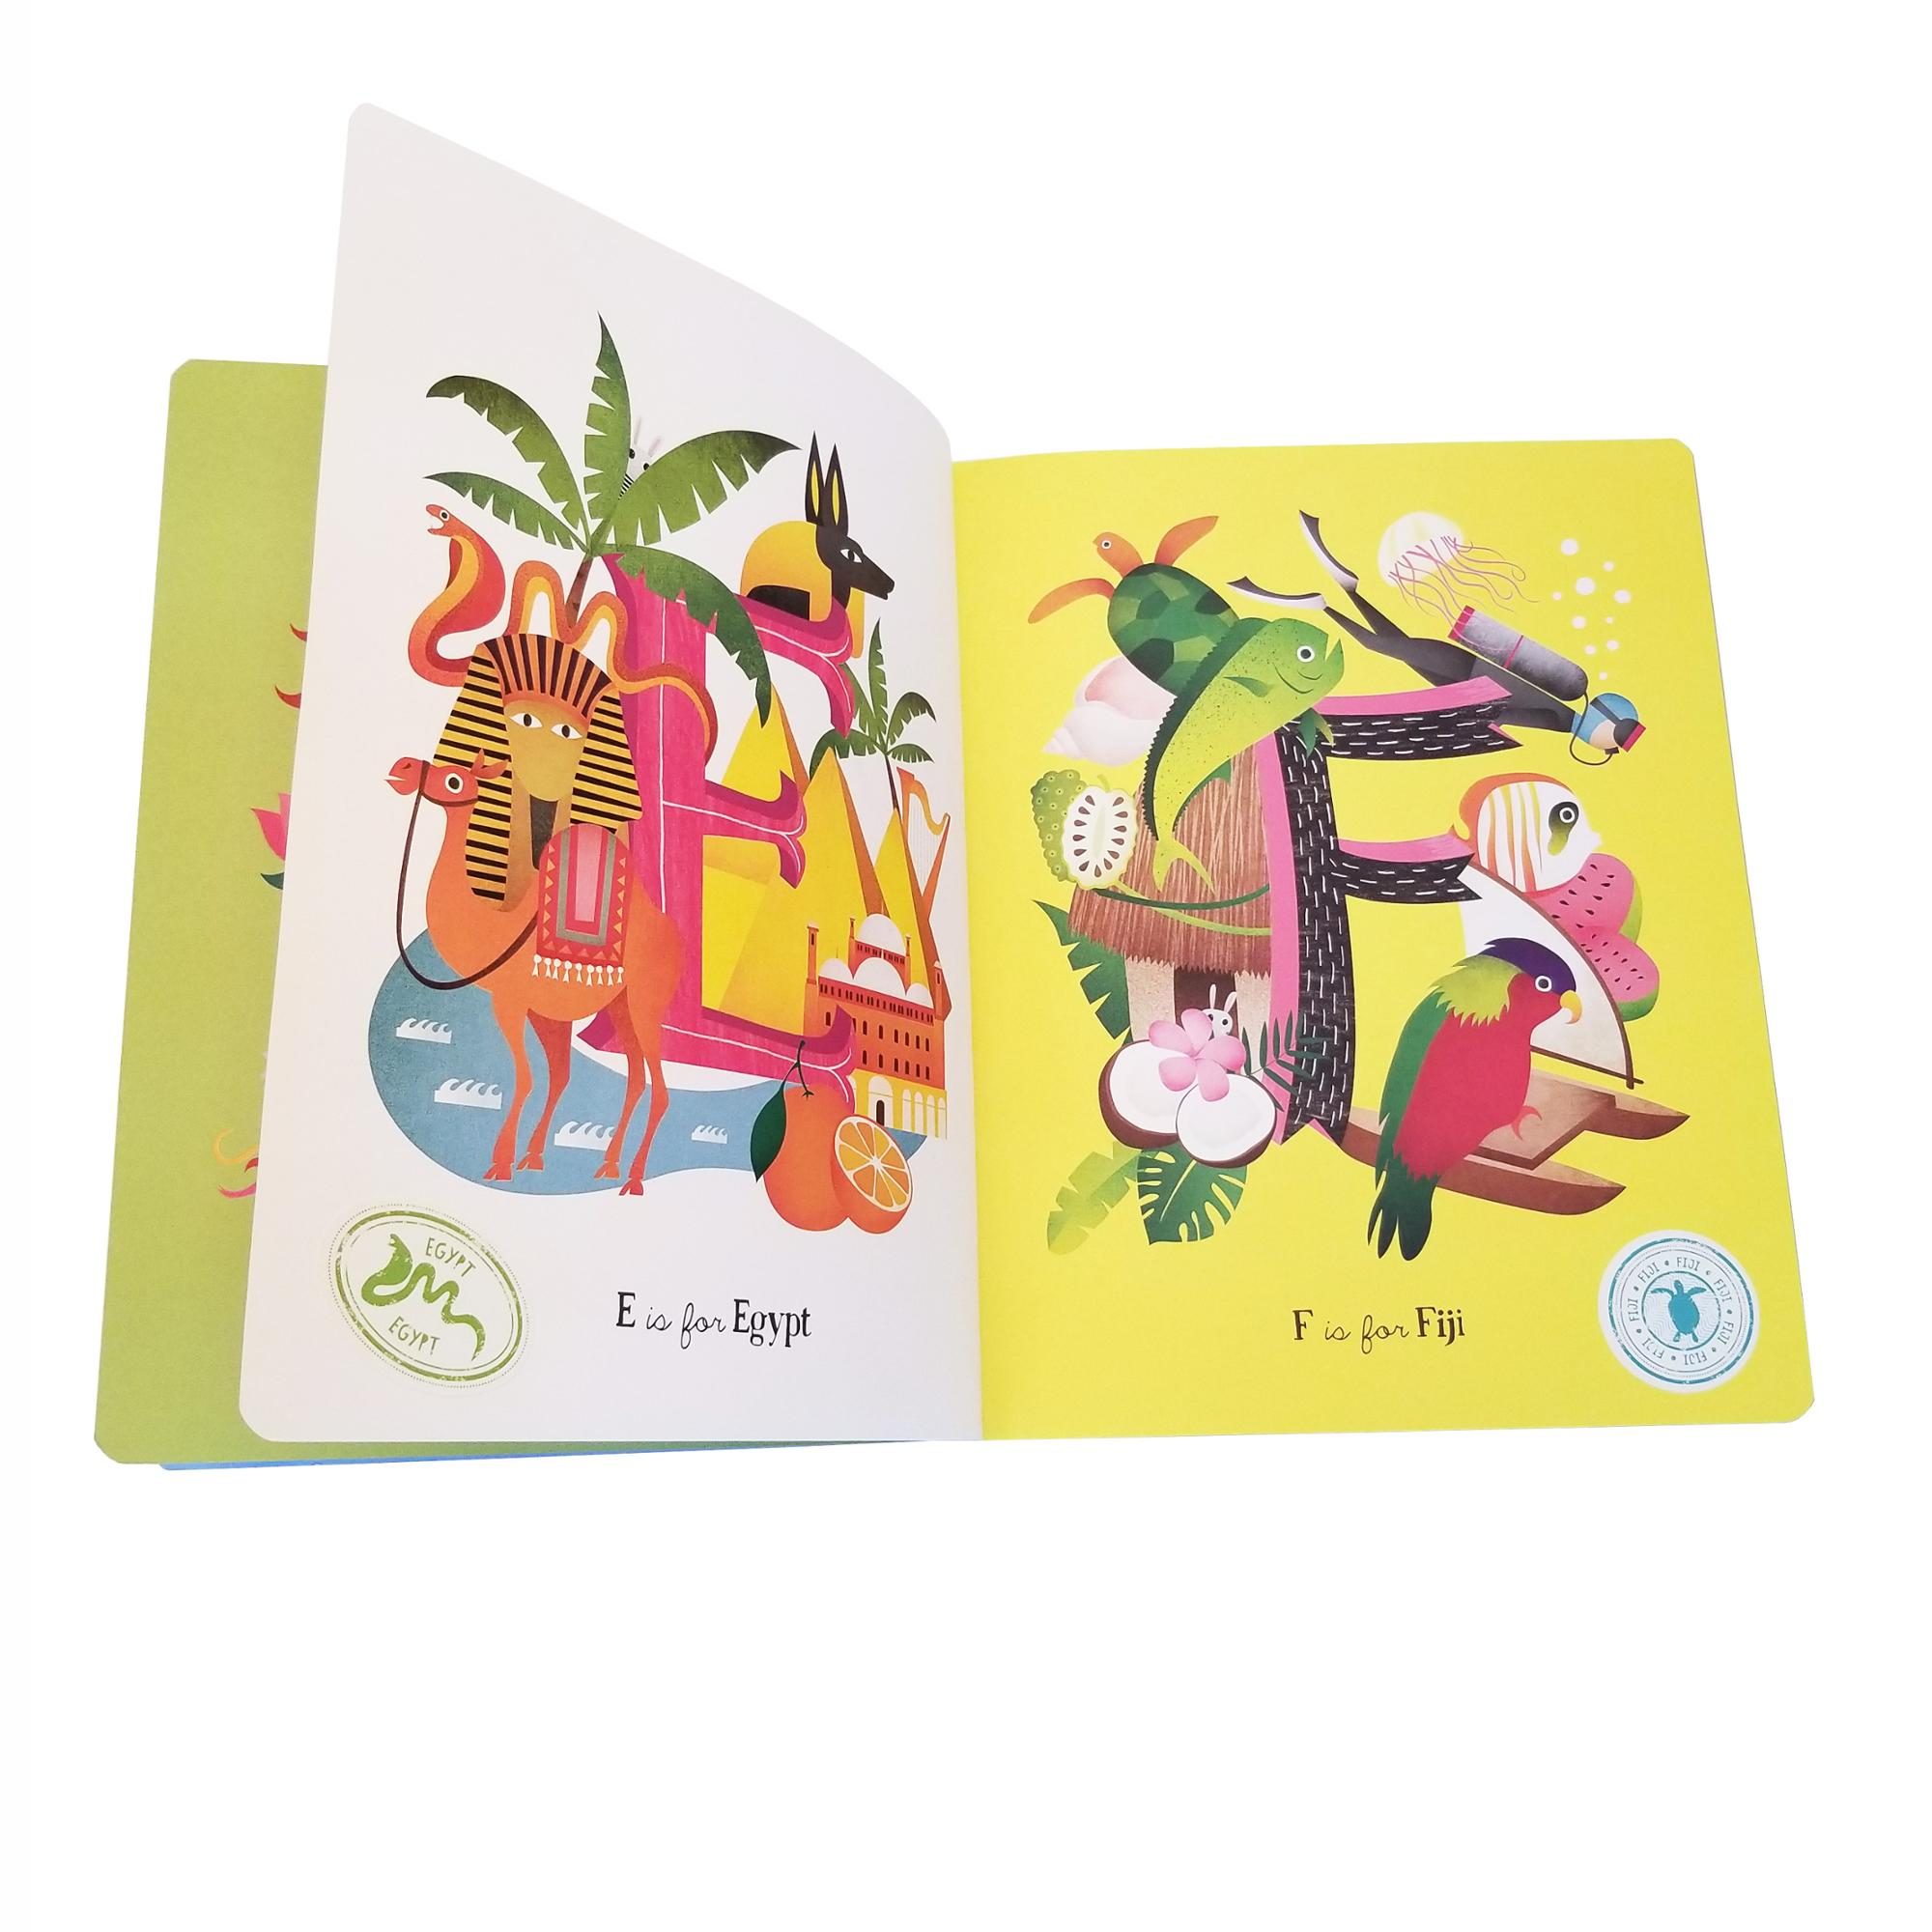 pop-ups children card book printing,children boardbook printing,Professional color painting hardcover books for kids